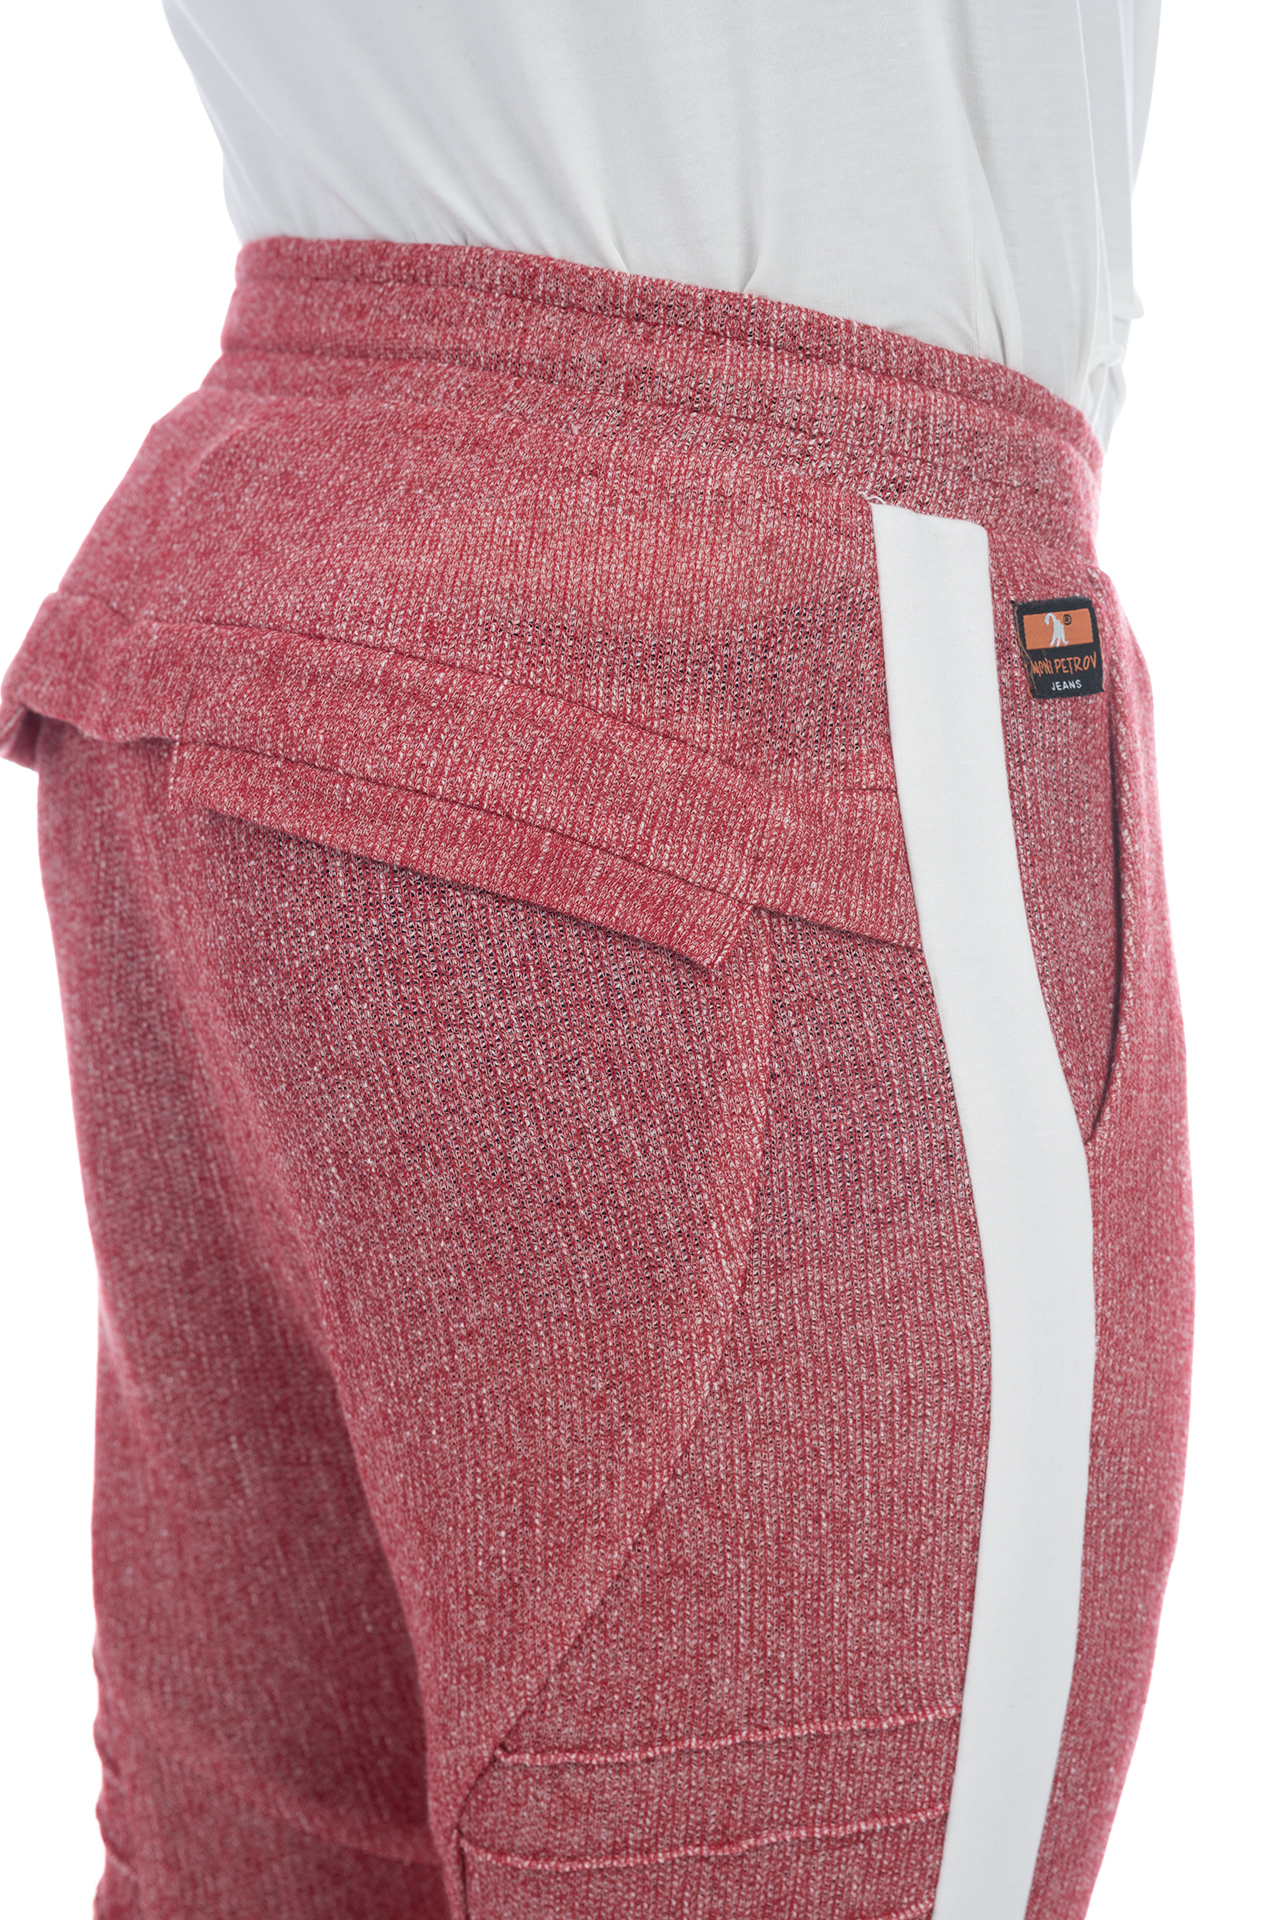 FRENCH TERRY PANT RED 4